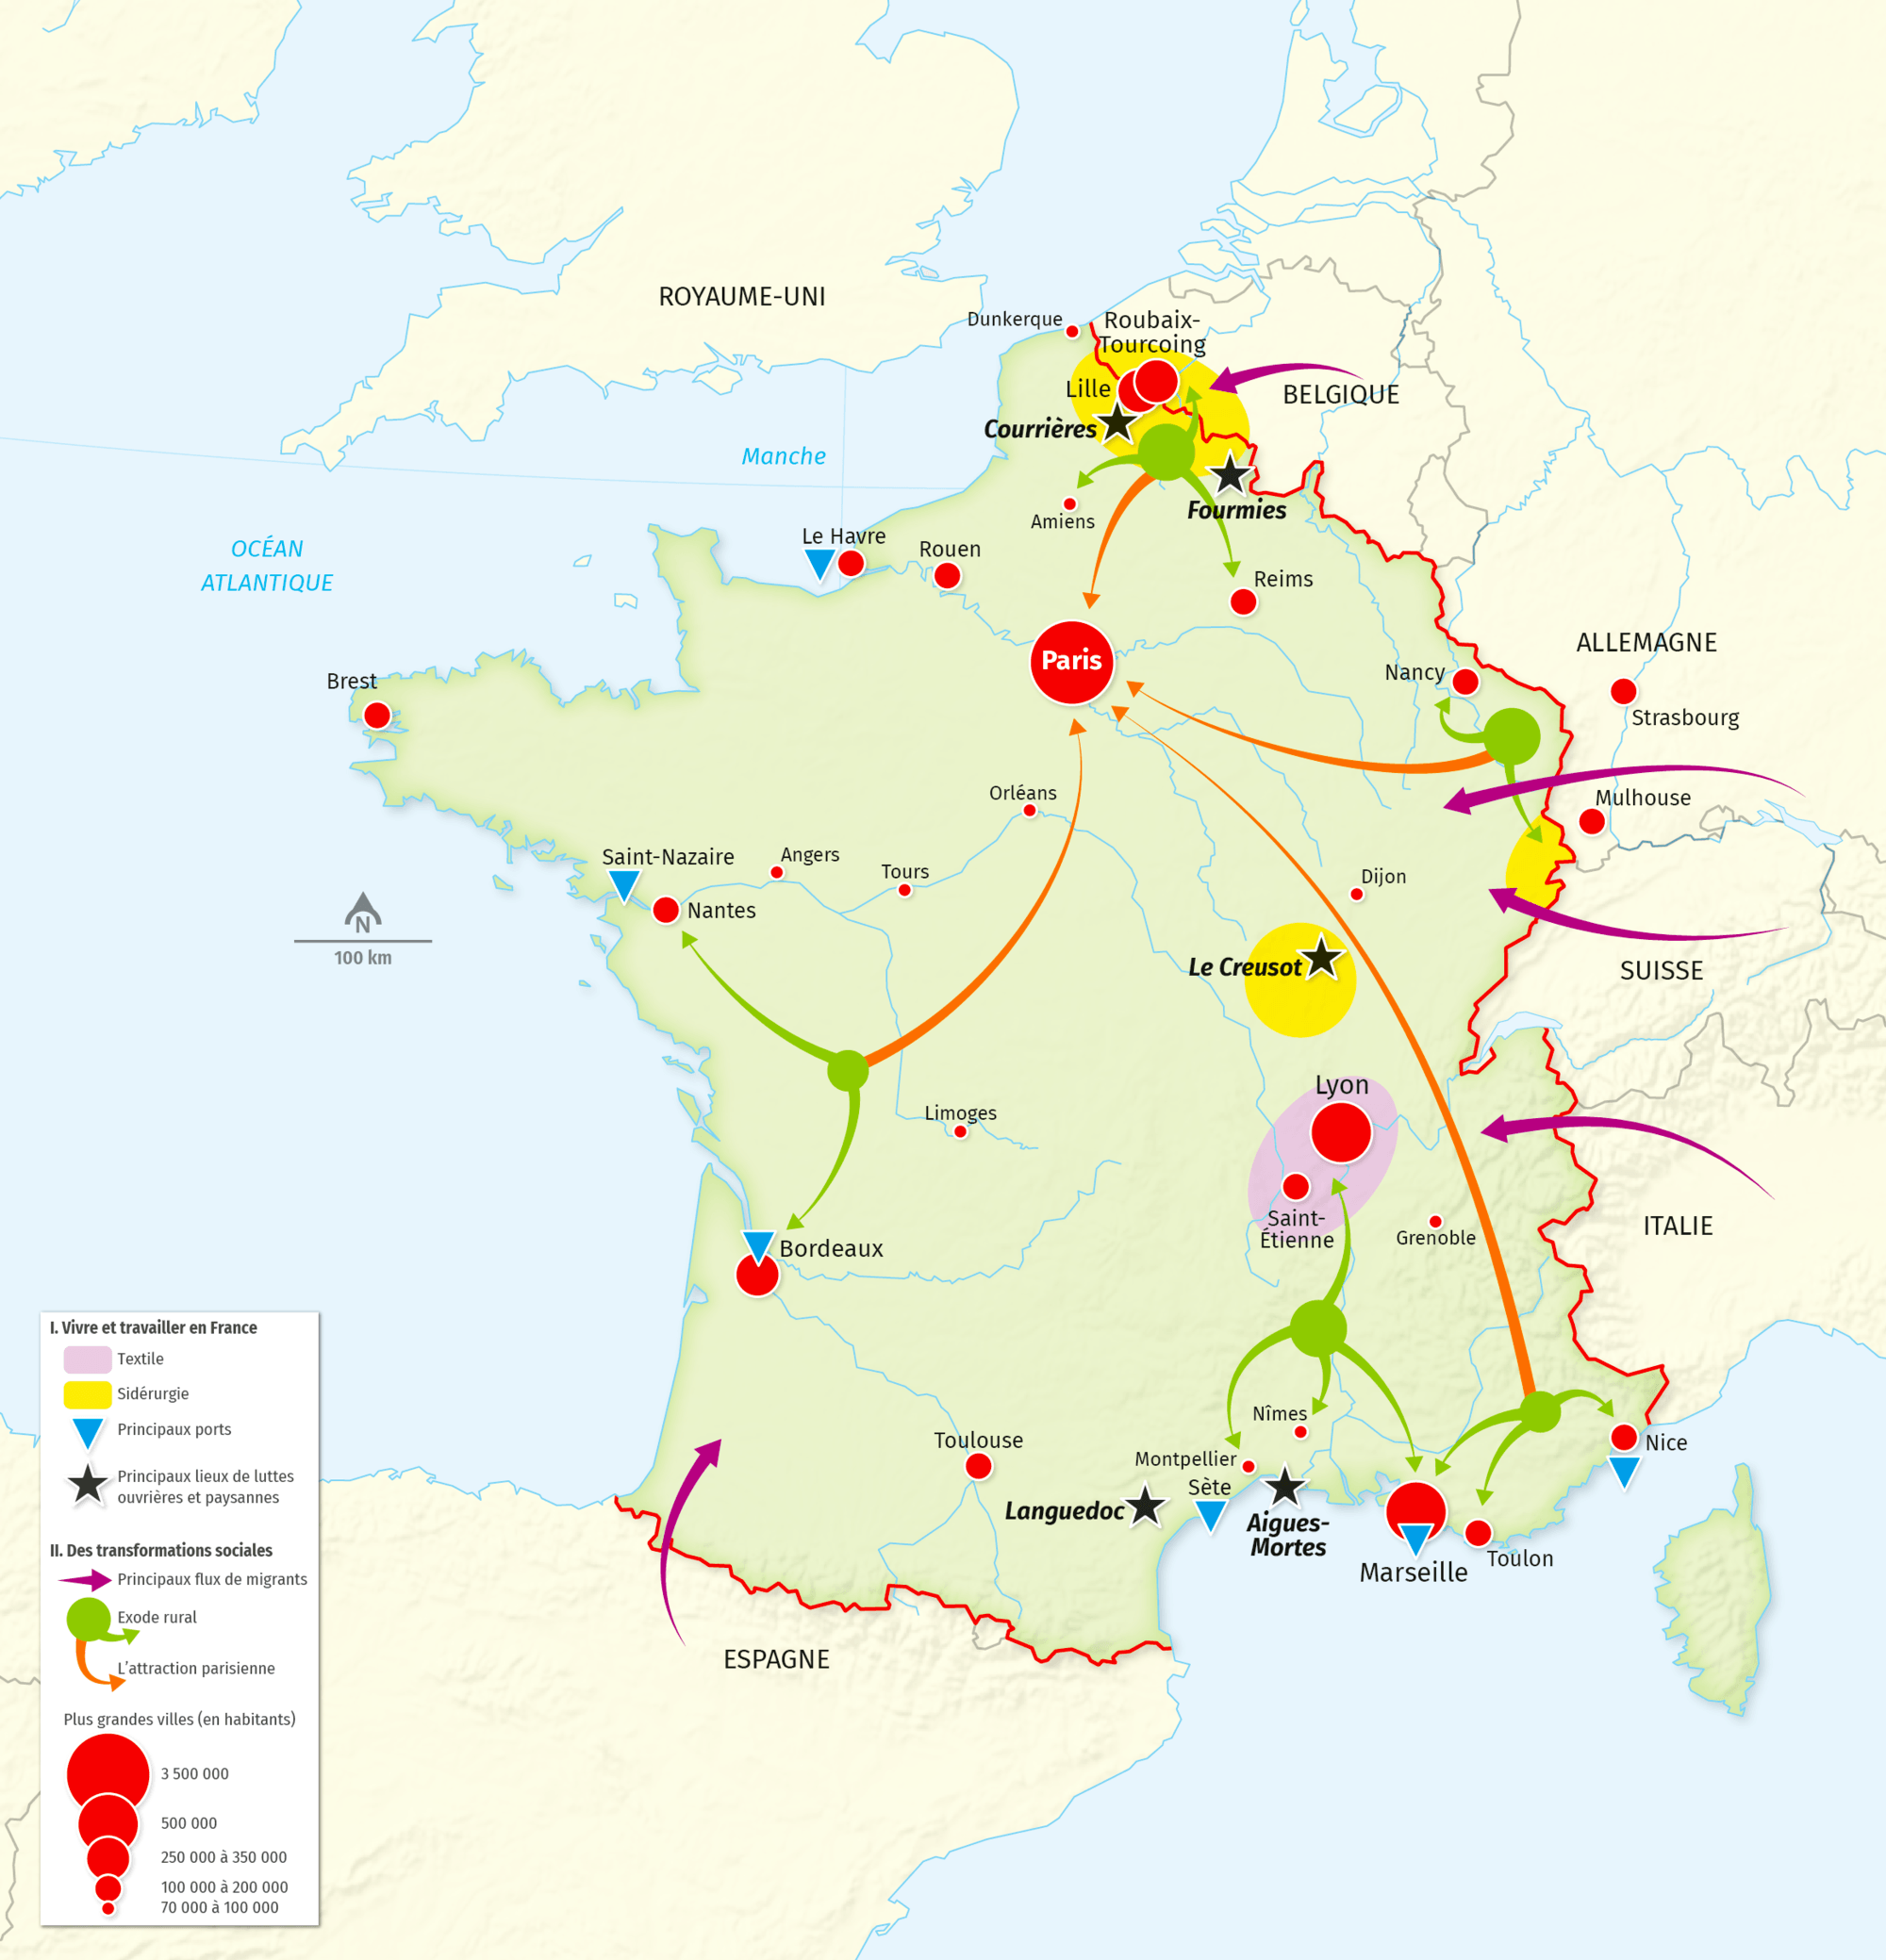 carte La construction de la France contemporaine